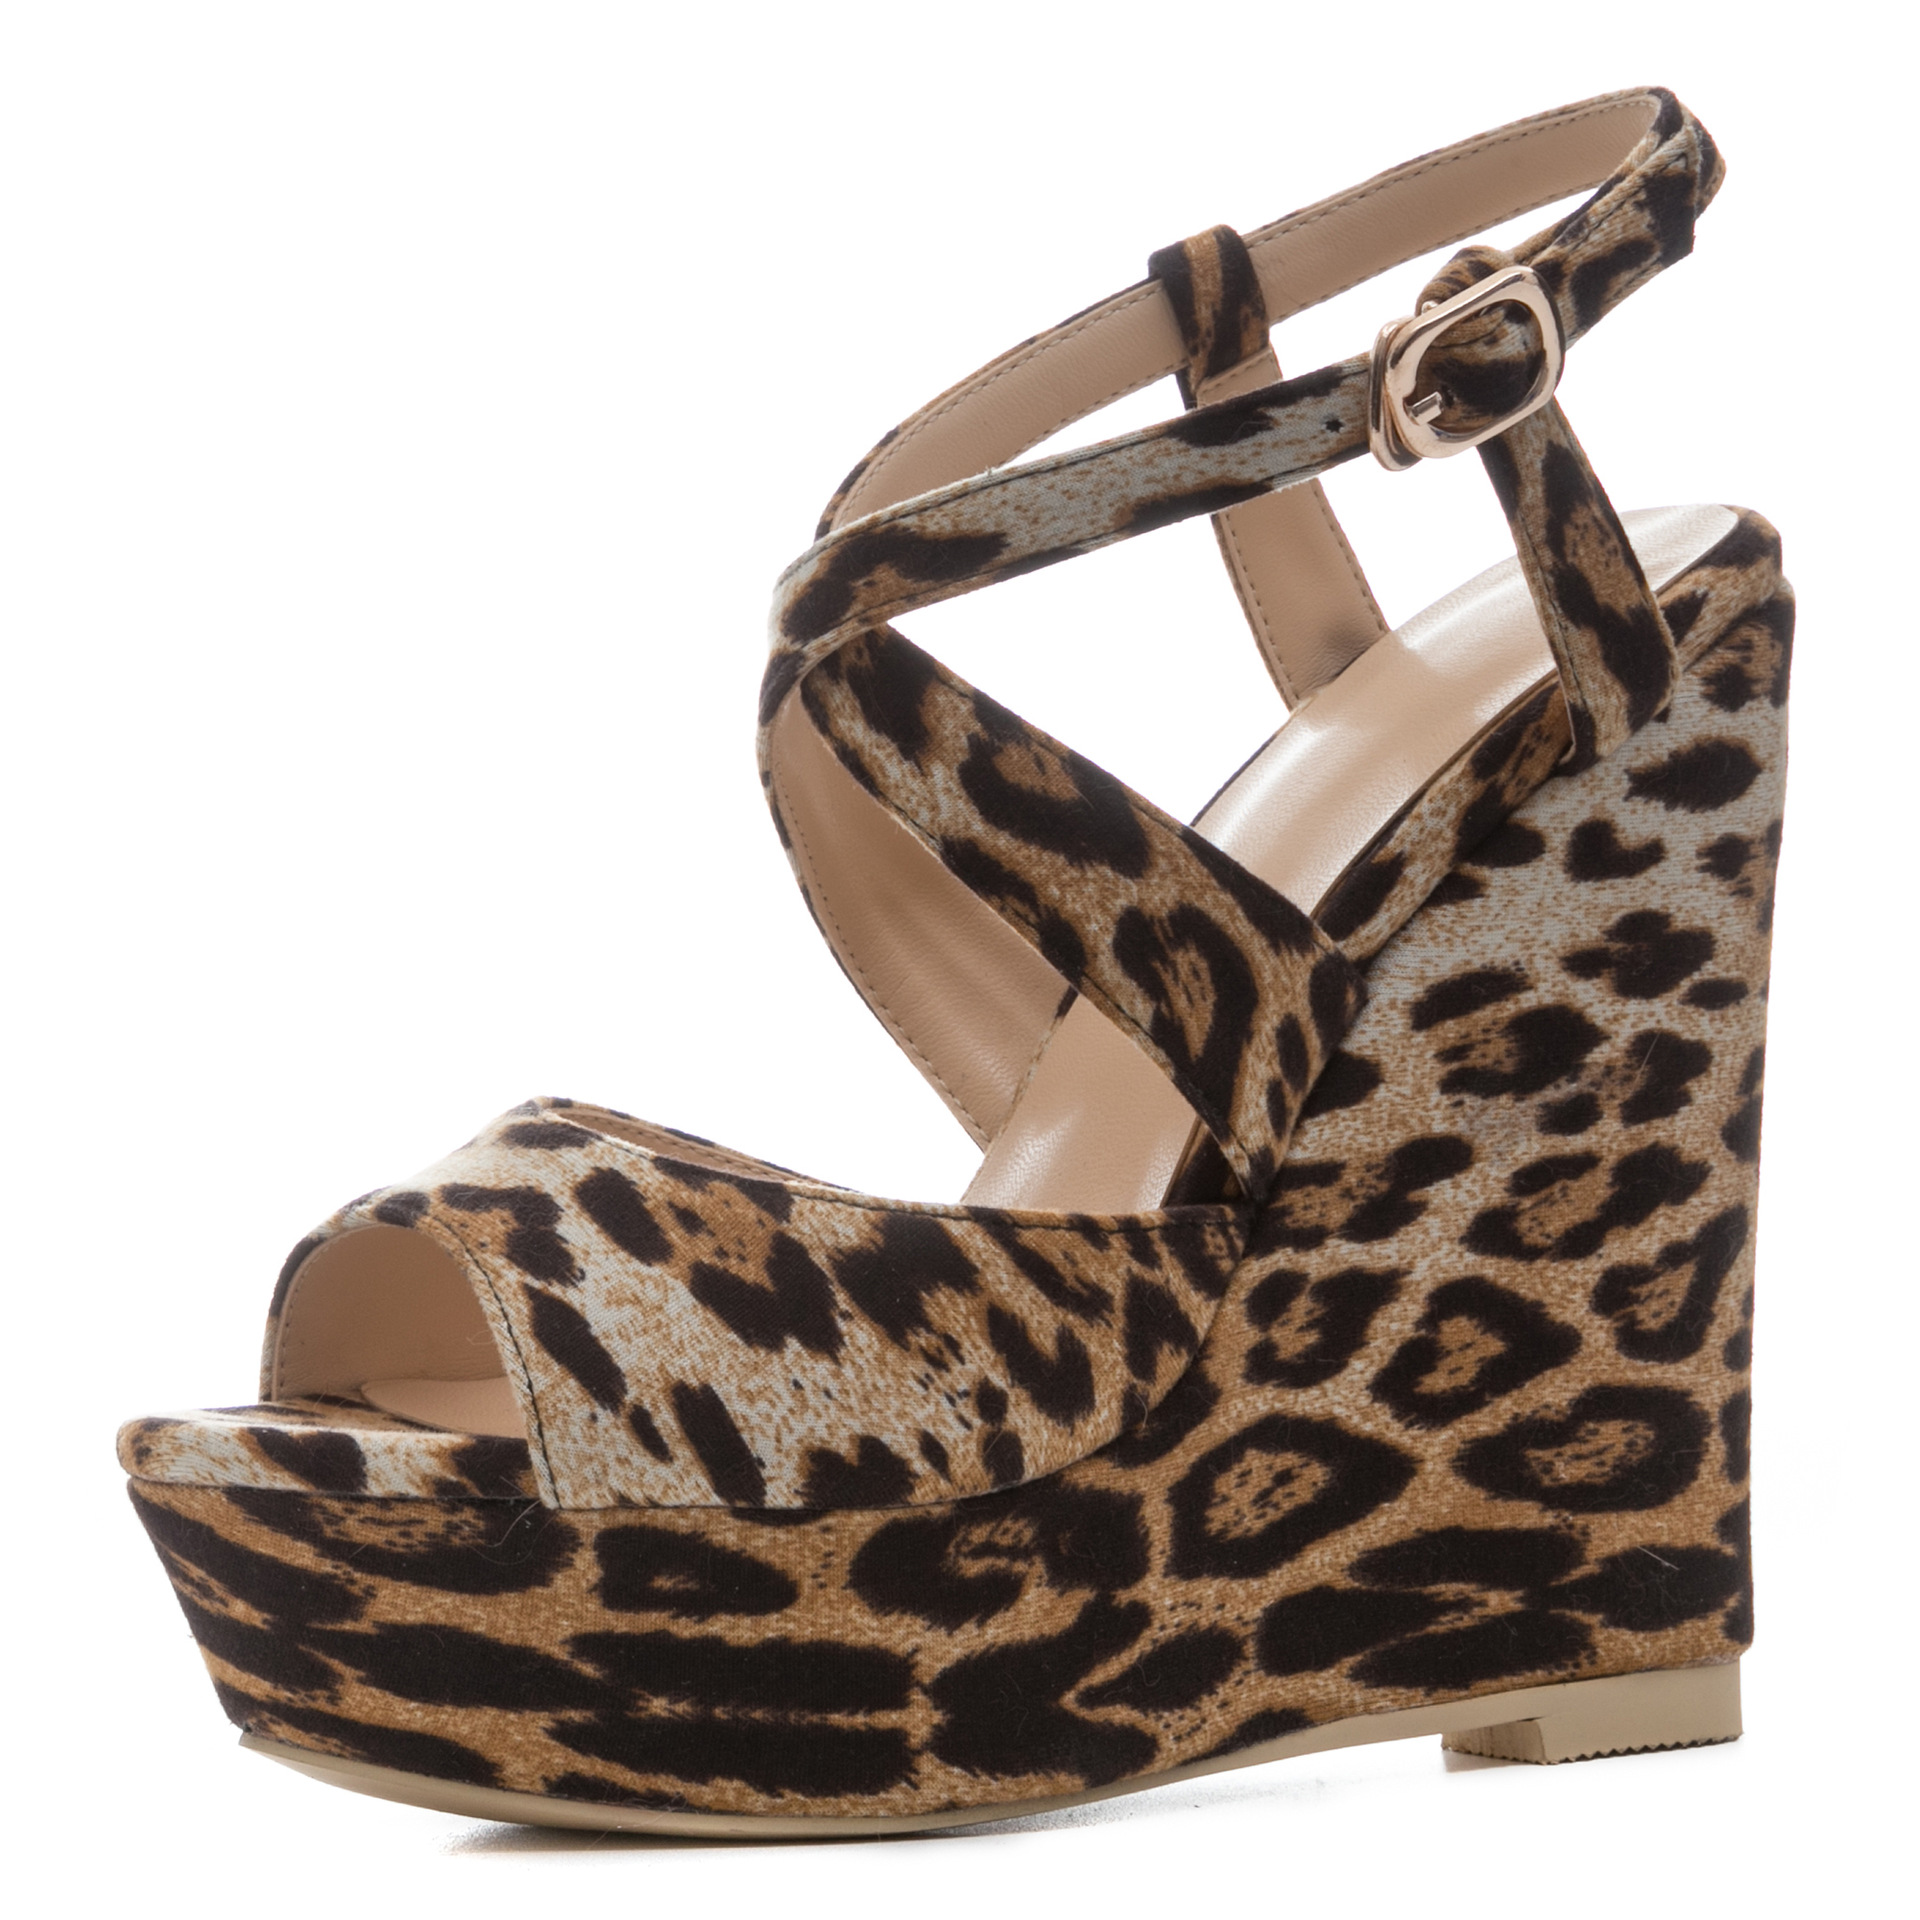 Wedge Women Sandals Zapatos Mujer Fashion Summer Leopard Platform Shoes Sexy Cross Strap High Heels Women Sandals Sandalias criss cross platform wedge sandals